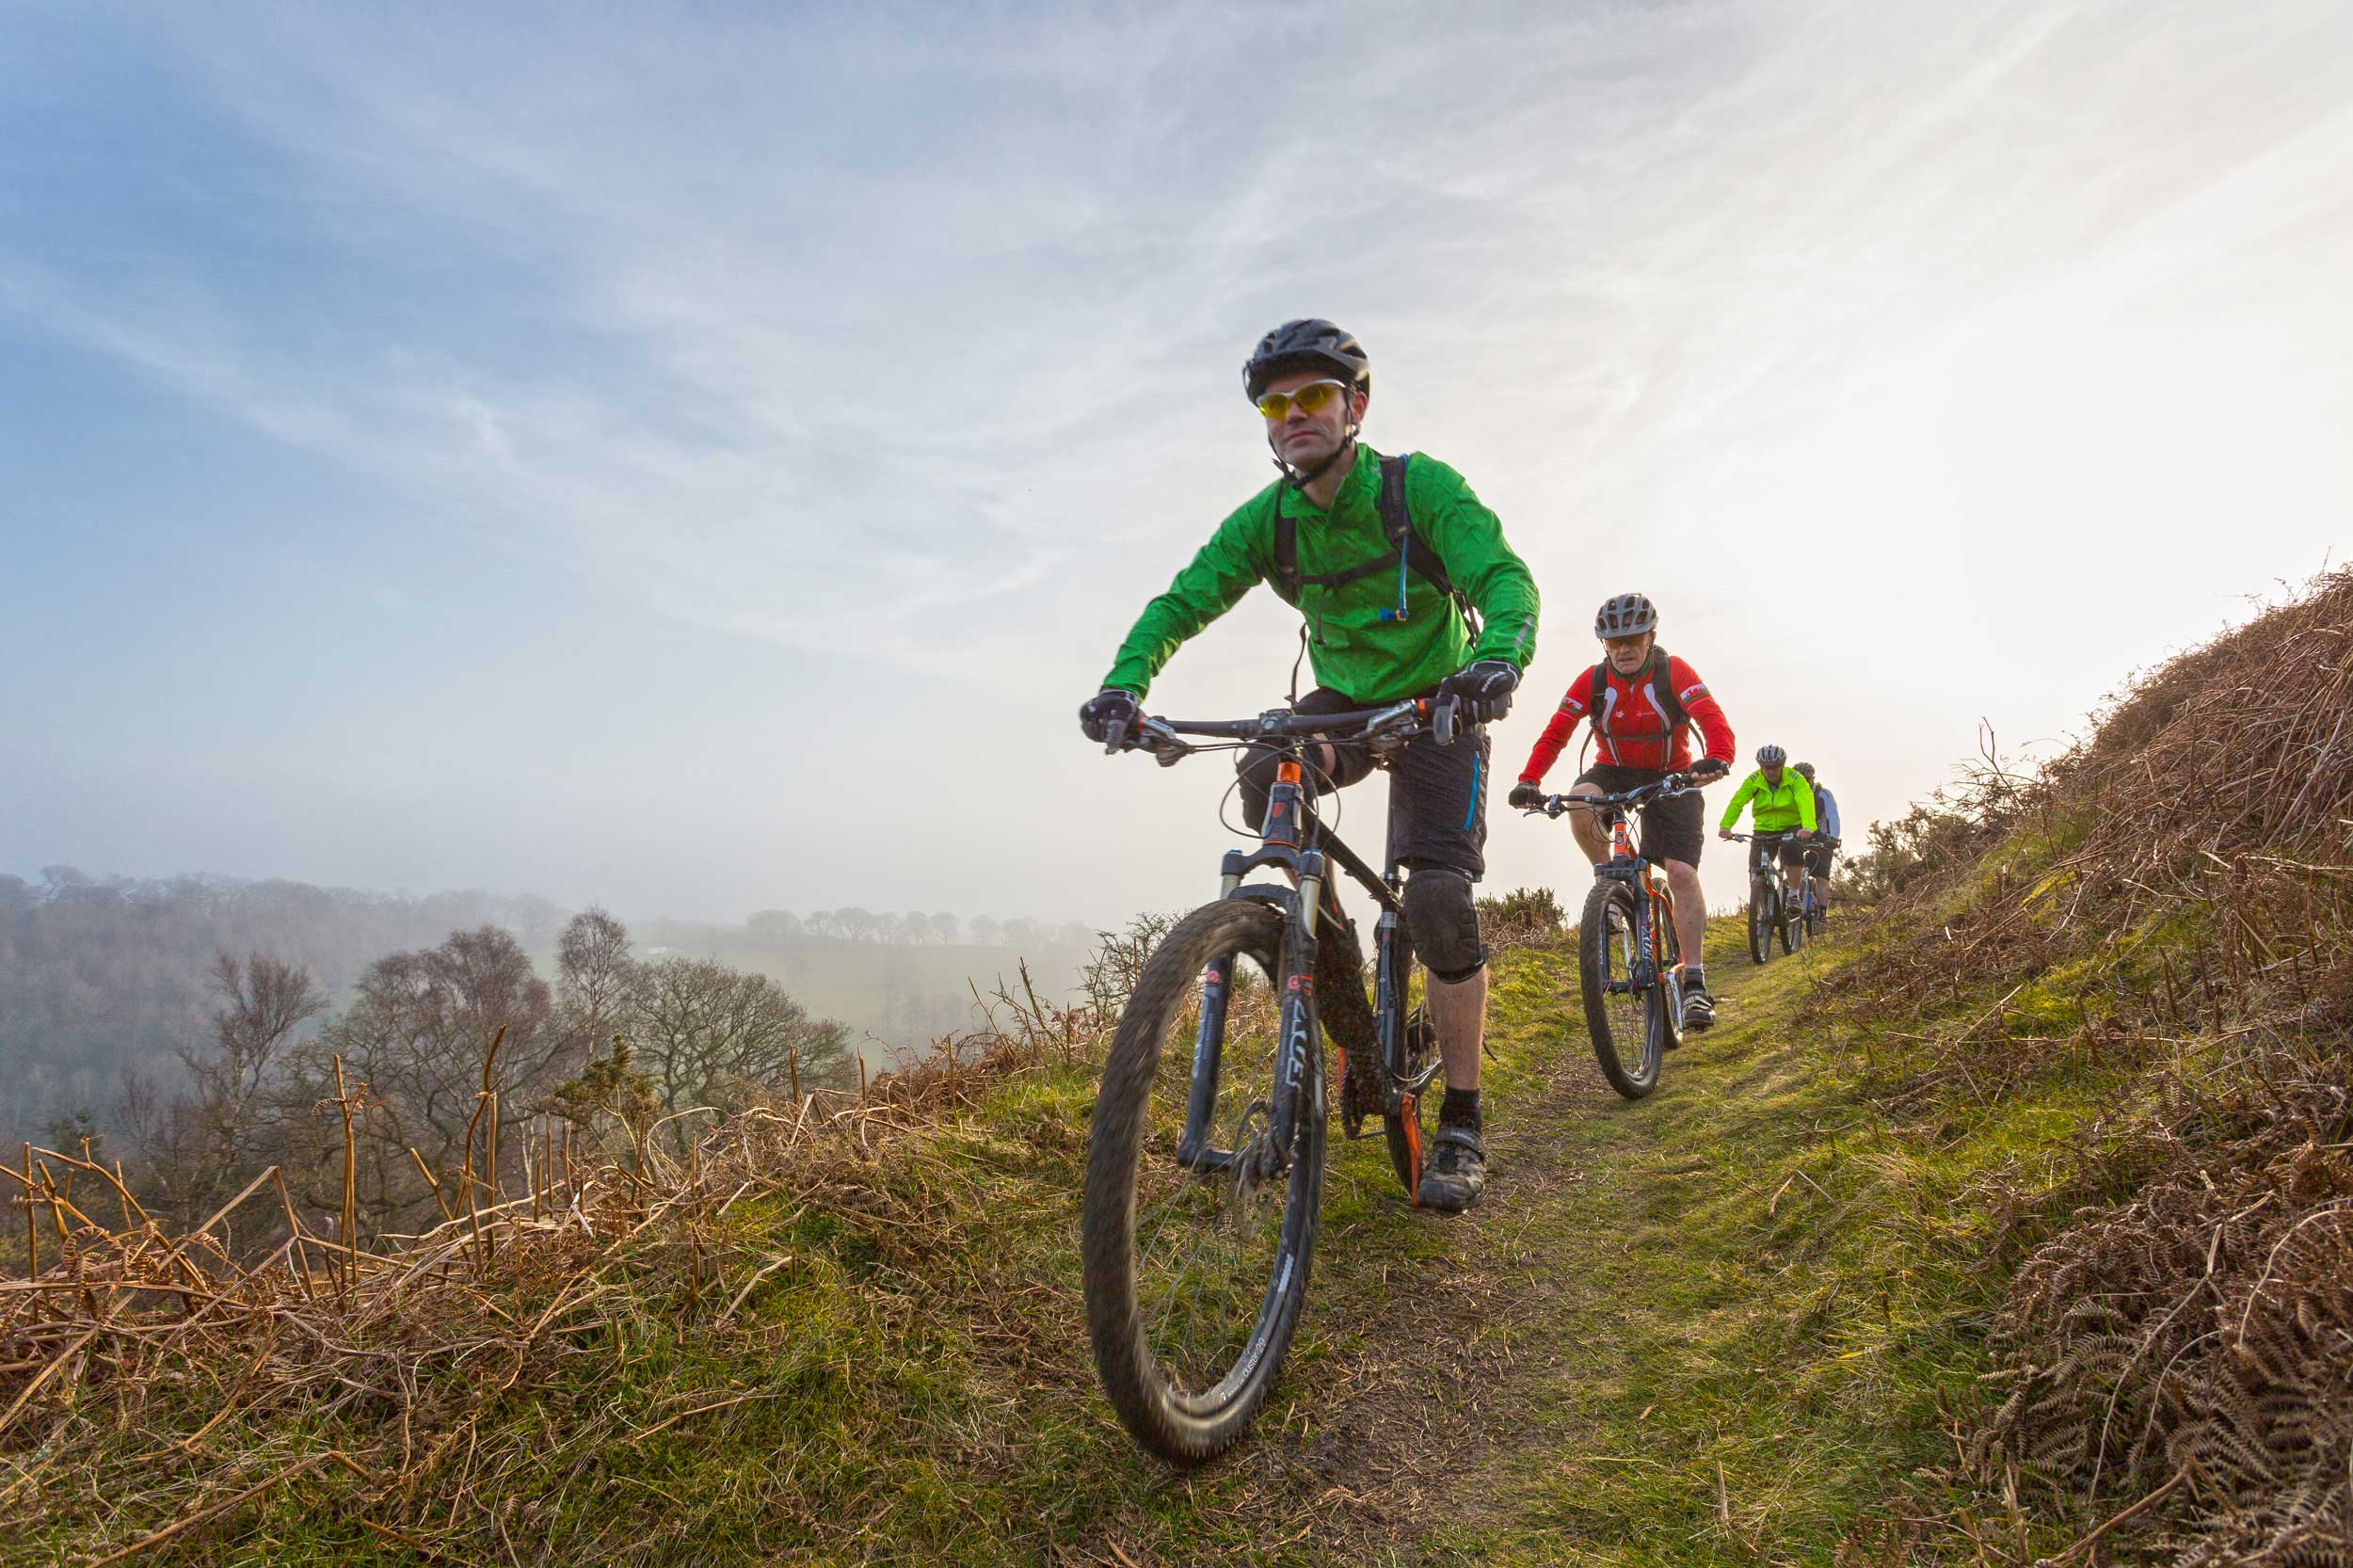 Mountain biking in the Clwydian Hills, Wales  (Crown copyright 2018 / Visit Wales)